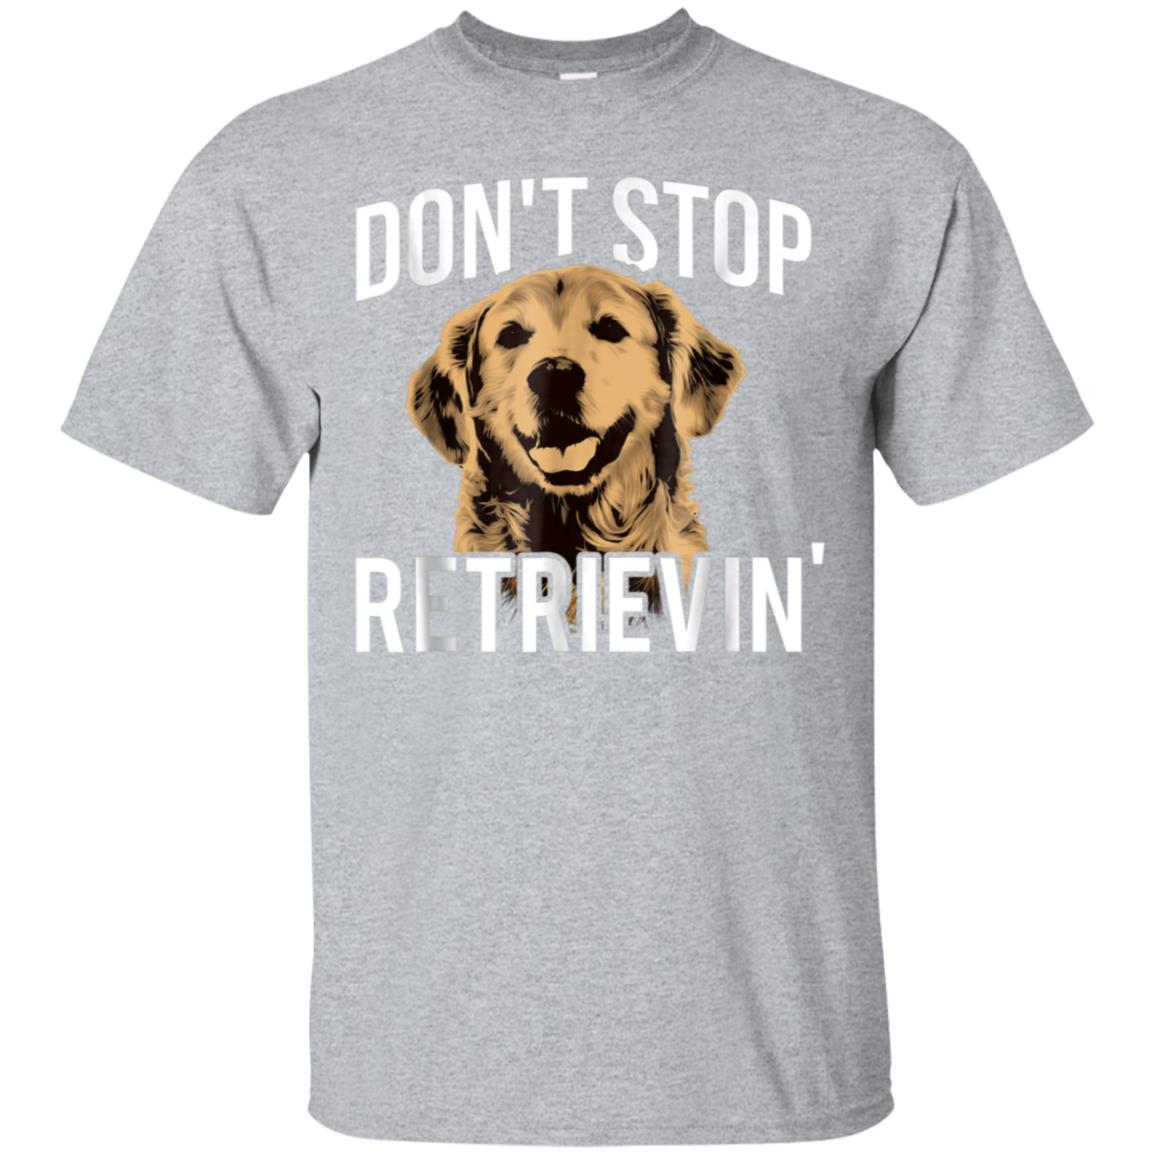 Don't Stop Retrieving - Funny Golden Retriever Owner T-Shirt 99promocode